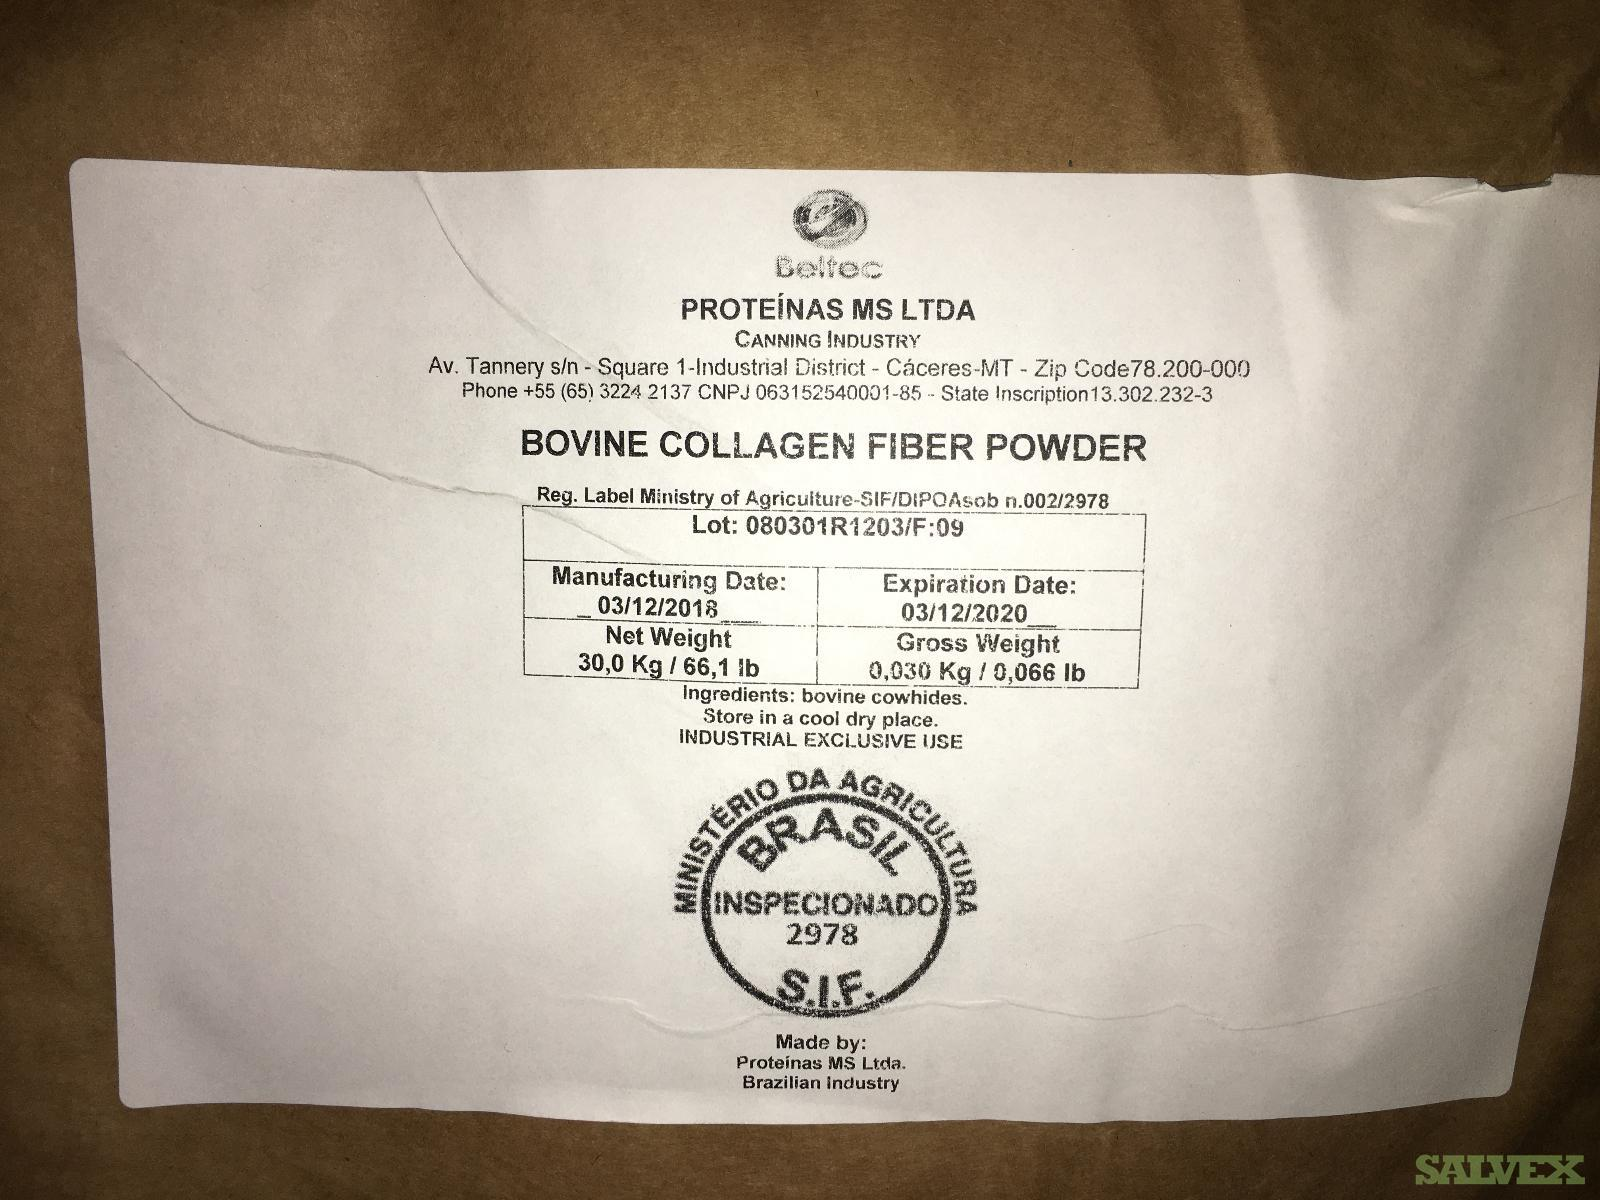 Beltec Bovine Collagen Powder (19 pallets - 338 bags - 10,140 kg )